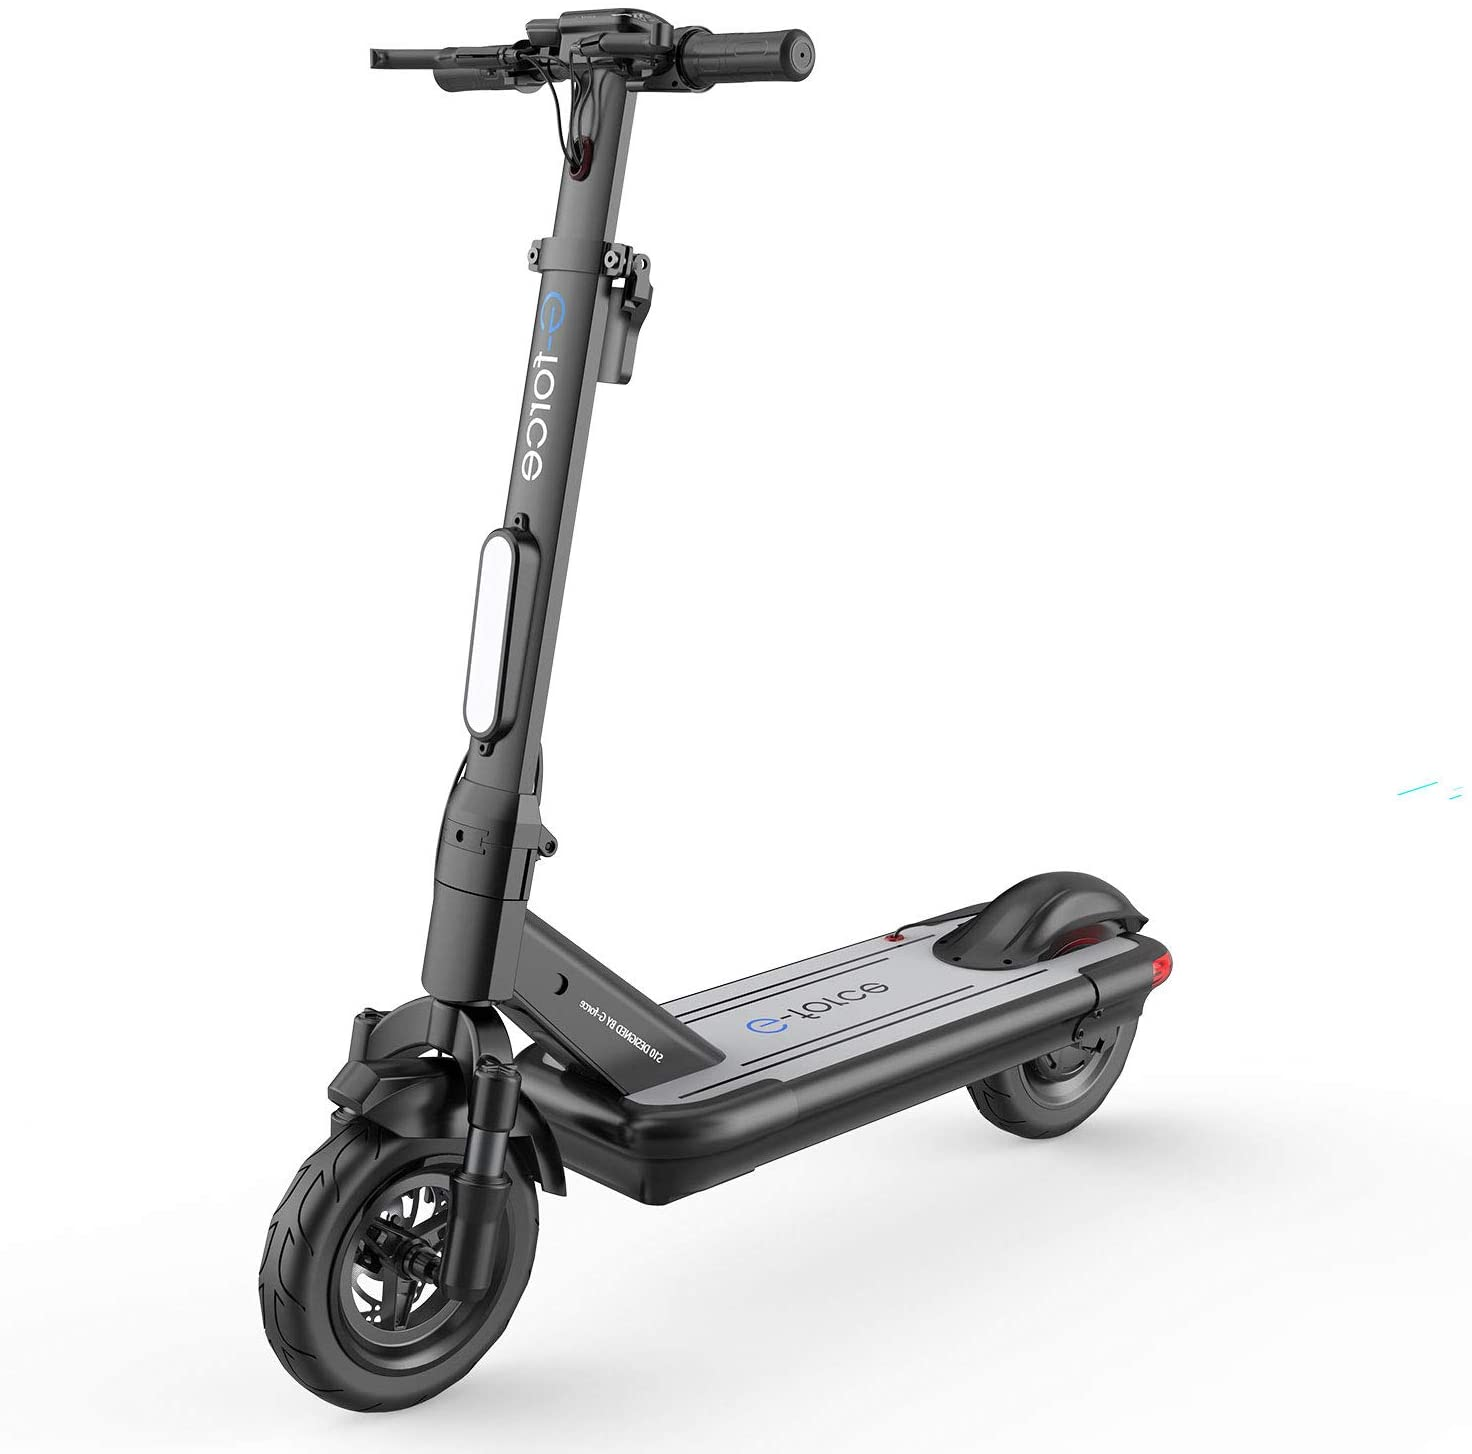 G-FORCE Electric Scooter S10,500W High-Power Motor, Maximum Speed 25MPH, Maximum Endurance 25 Miles,Easy to Fold and Carry.